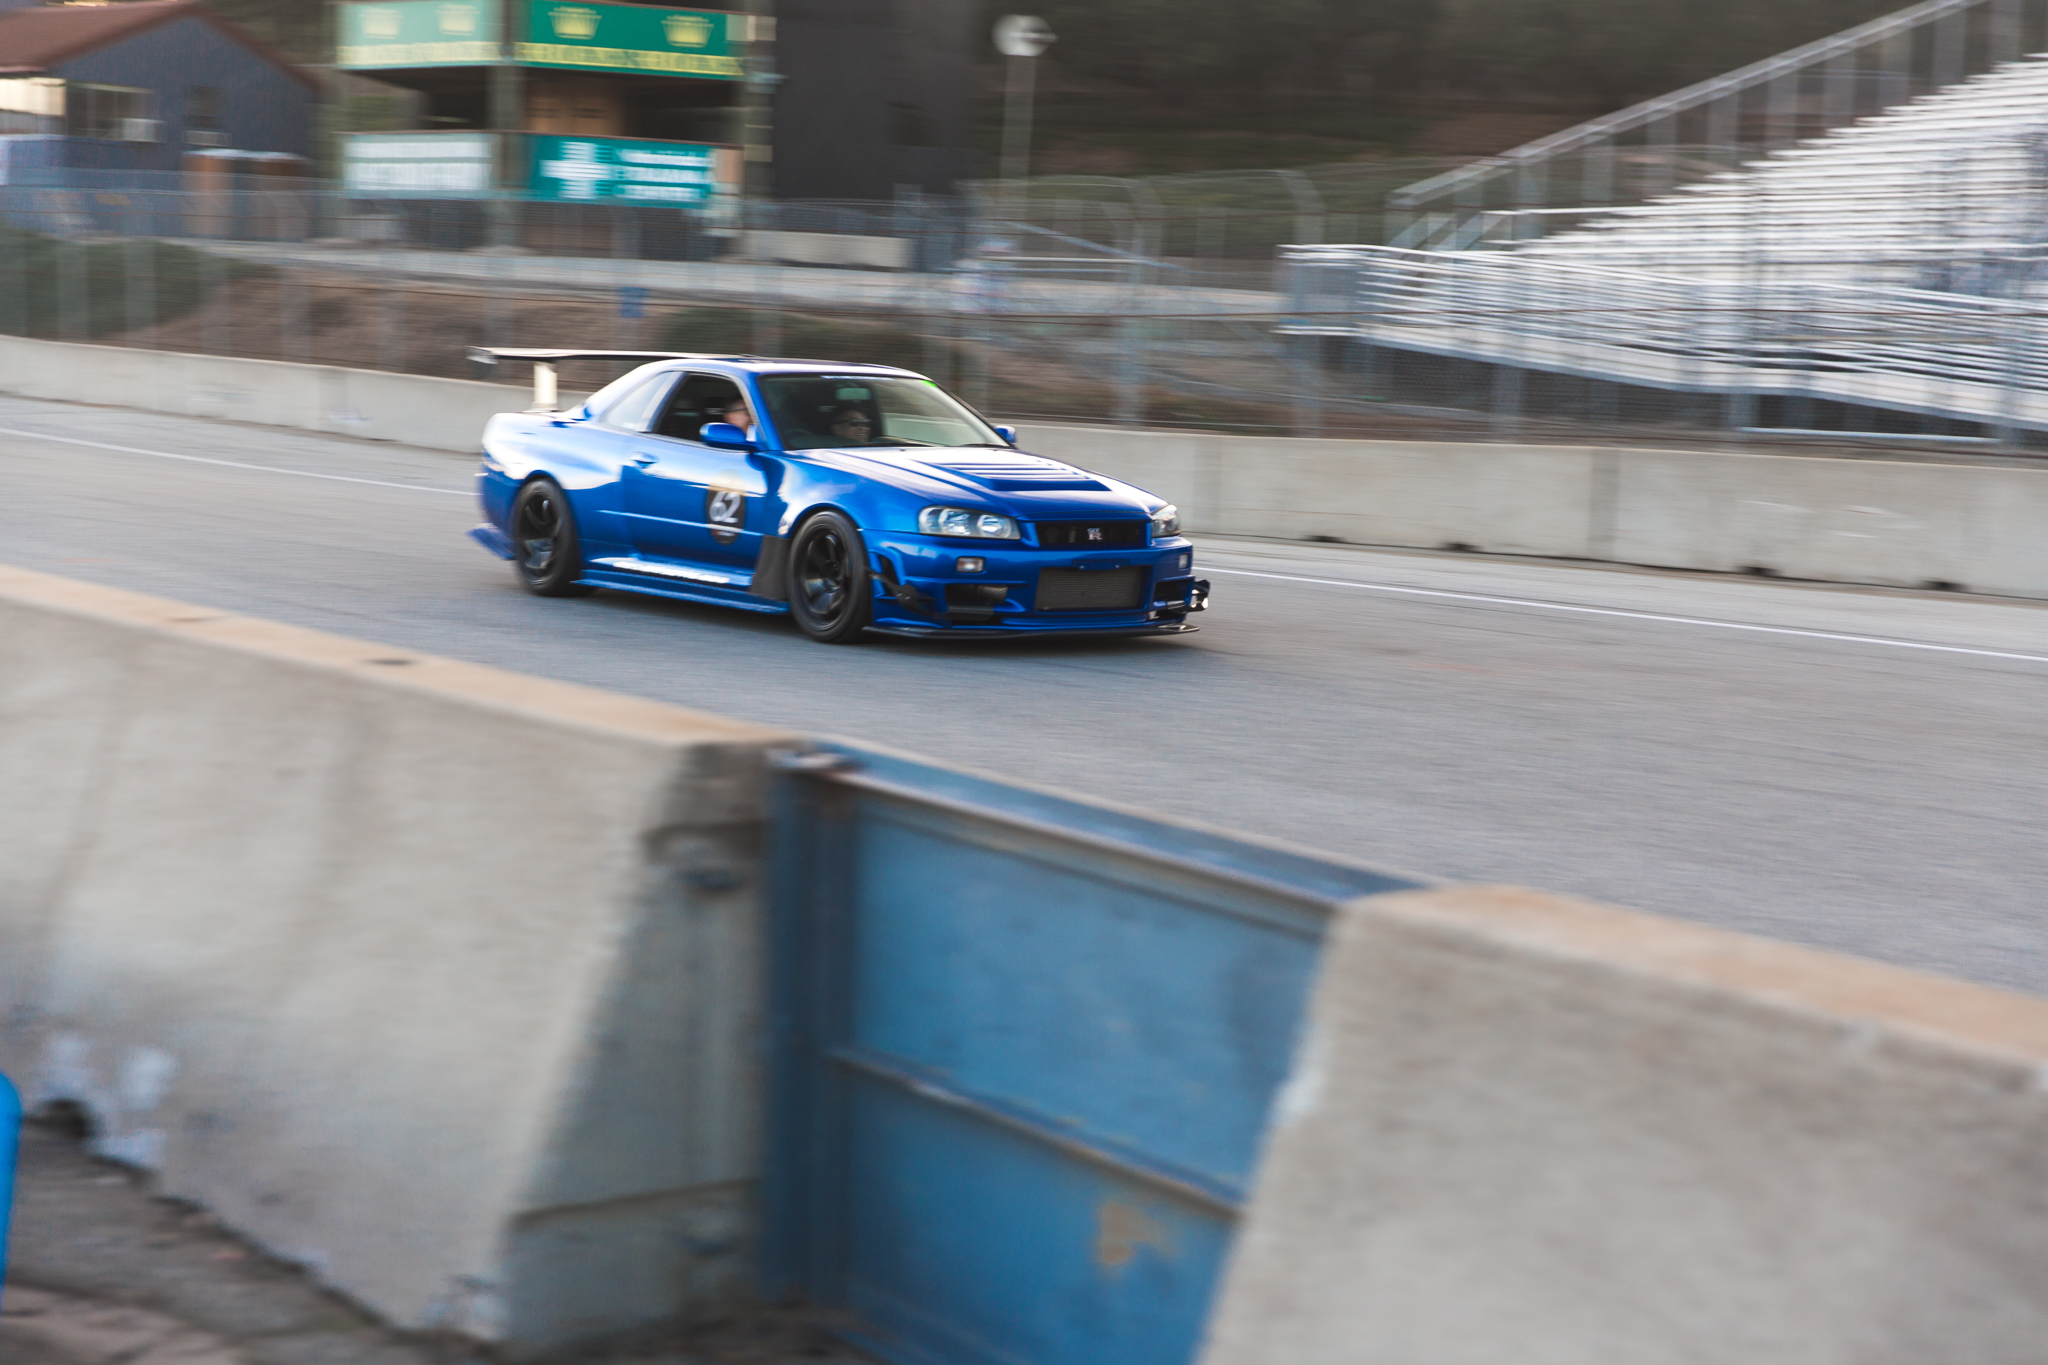 Stay_Driven_Rs_Day-123.jpg